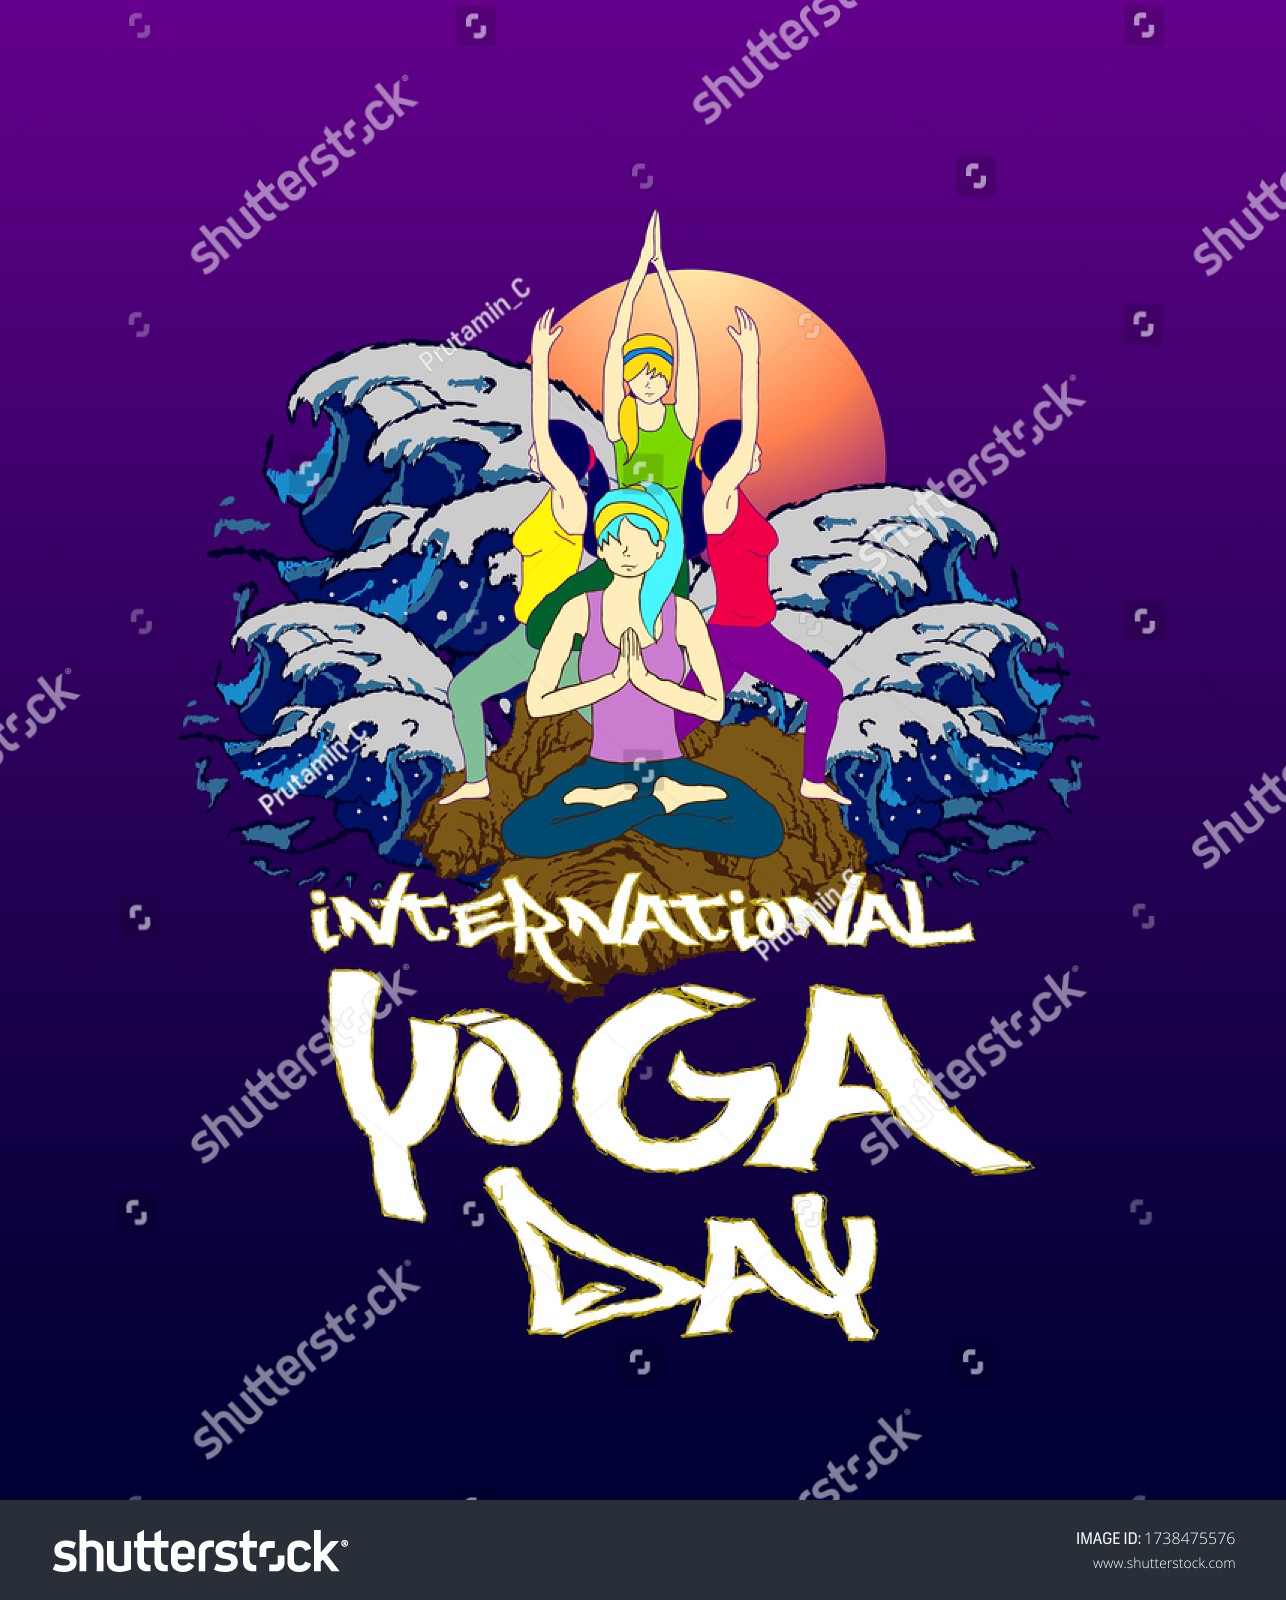 21 june international yoga day background, poster and t-shirt design, banner with yoga body posture vector illustration Embroidery Men T-shirts Summer Casual Short Sleeve Hip Hop T Shirt Streetwear